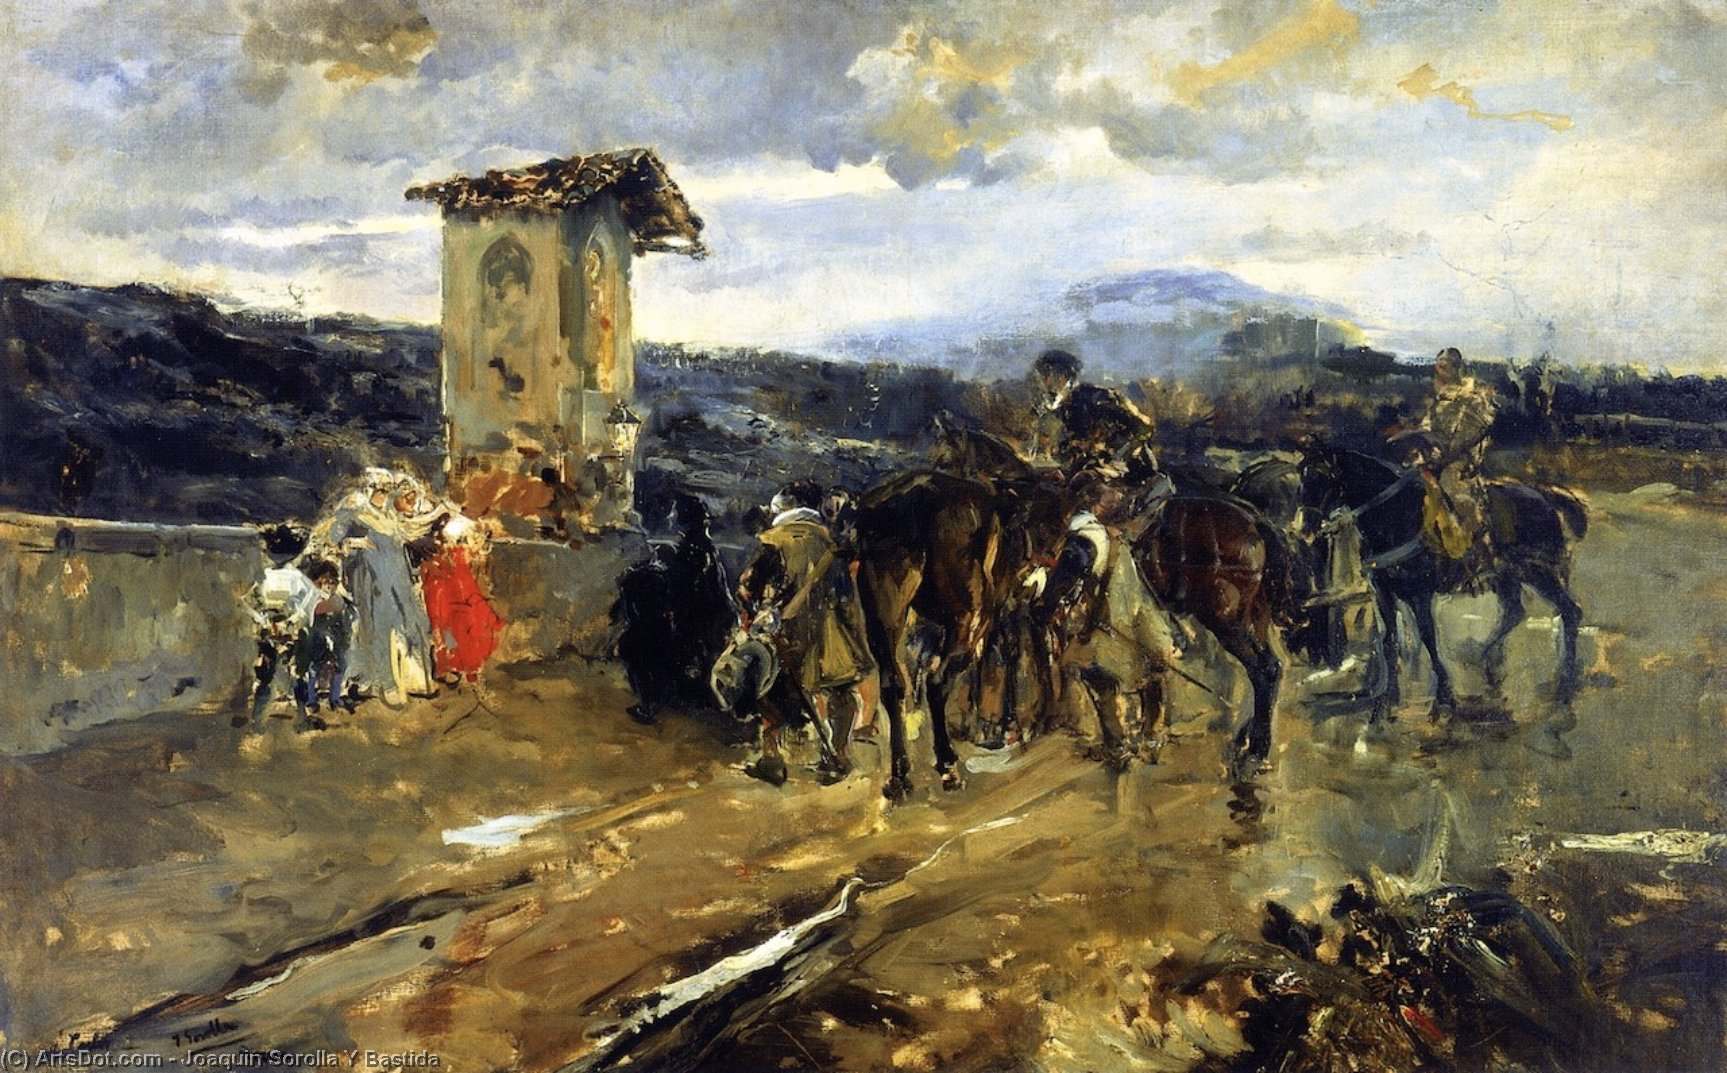 Stopping along the Way, Scene from Don Quixote, Oil On Canvas by Joaquin Sorolla Y Bastida (1863-1923, Spain)